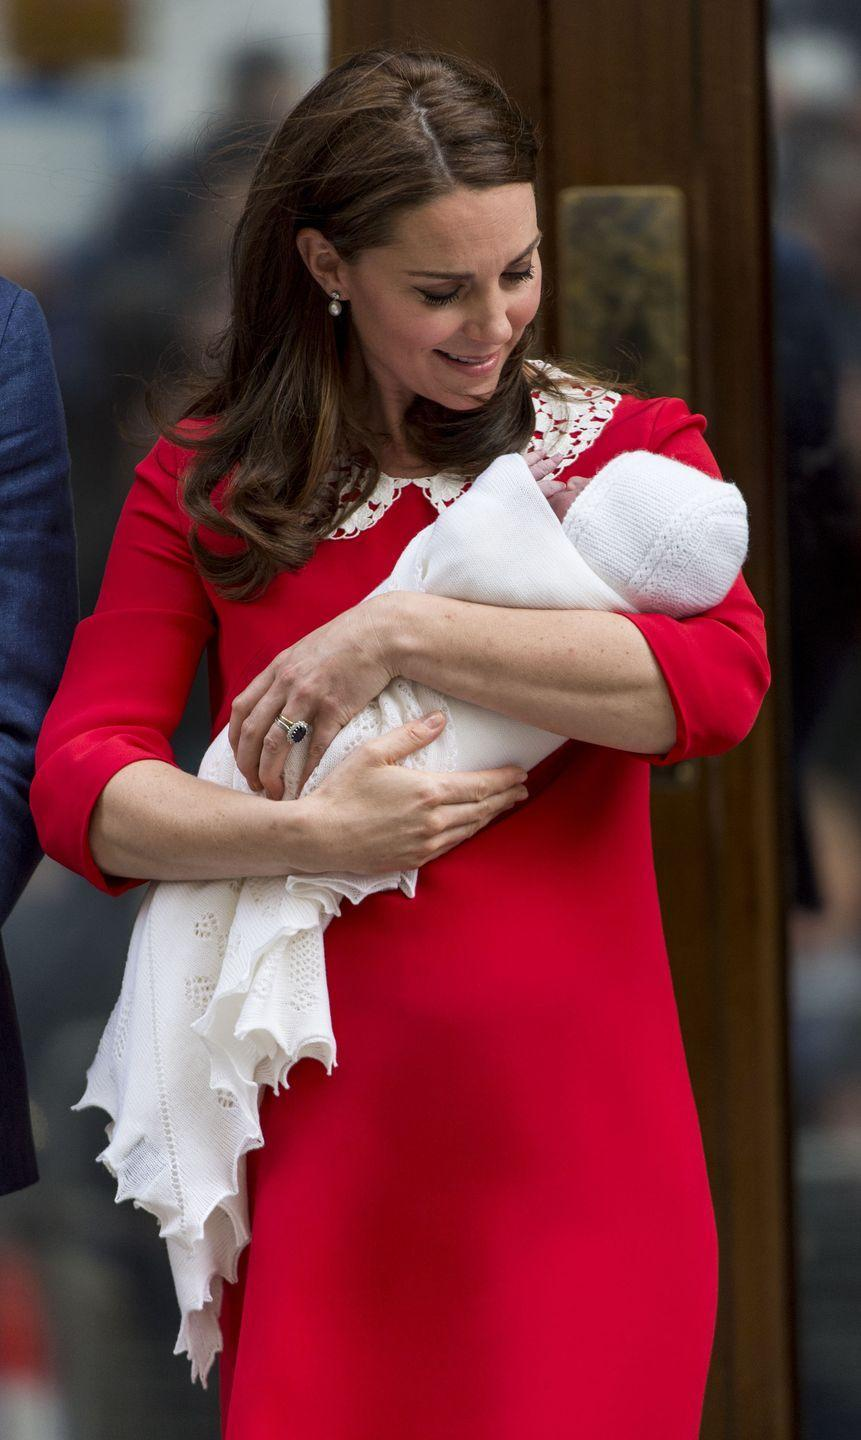 <p>For years, it's been tradition for royal mothers to make an appearance hours after giving birth for an official royal photo call. For Prince Louis' birth last year, people including Keira Knightley criticized the Duchess for setting unrealistic expectations for new mothers. Many praised the Duchess of Sussex for choosing to wait longer before stepping out in full hair and makeup. </p>